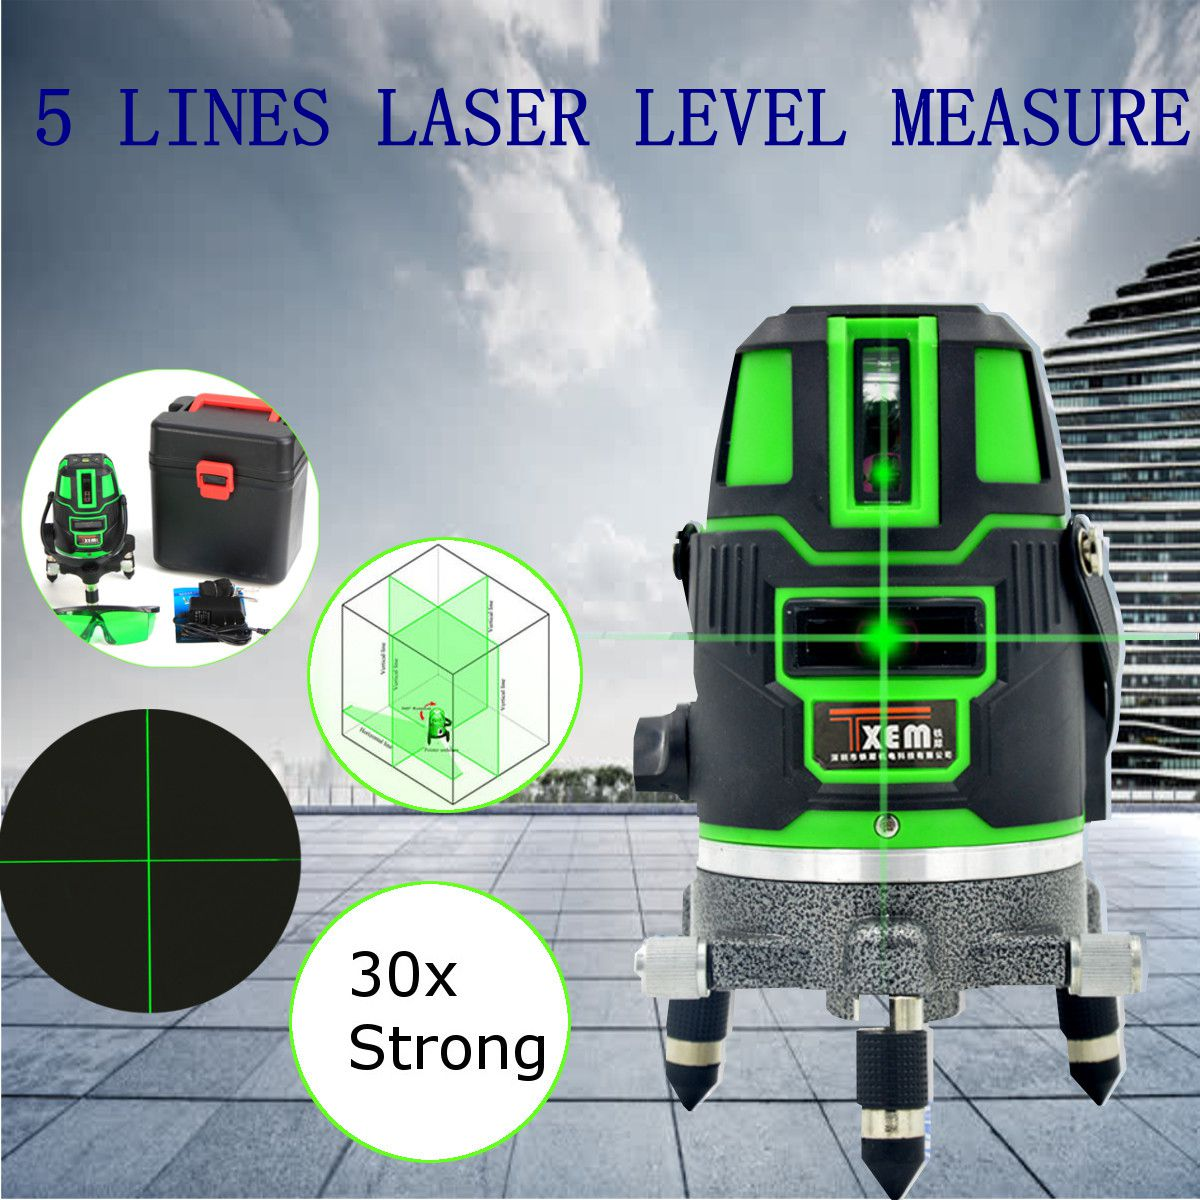 Green Beam Laser Level 5 Line Cross  30 Times Green Self  Leveling 360 Degree Rotary Outdoor Measuring Lazer Level Tools quality mtian level laser 5 lines 6 points instrument levels 360 self rotary 635nm corss line lazer level tools fast delivery